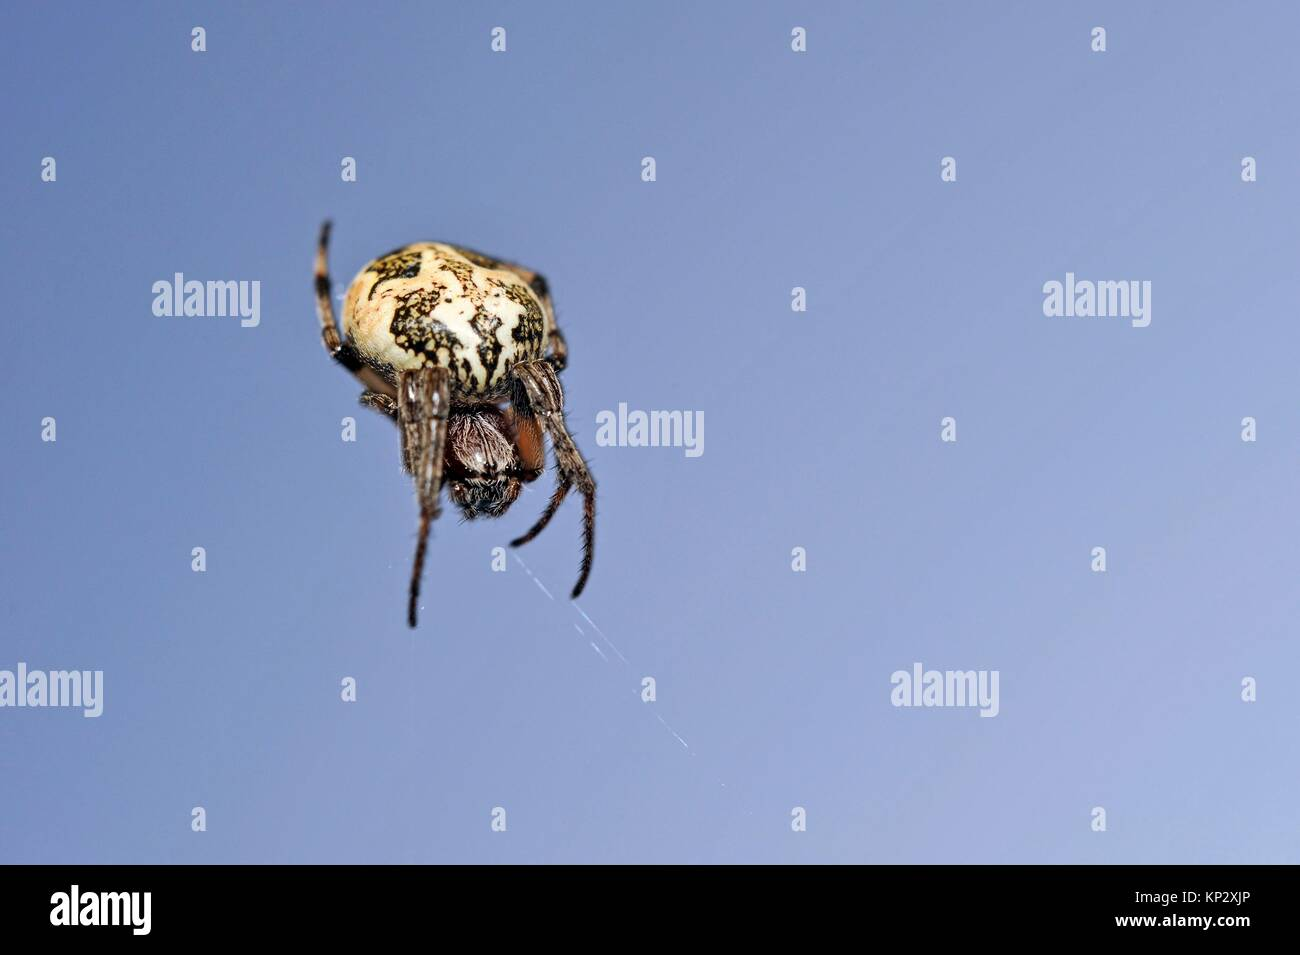 furrow spider (Larinioides cornutus), Eure-et-Loir department, Centre-Val de Loire region, France, Europe. - Stock Image